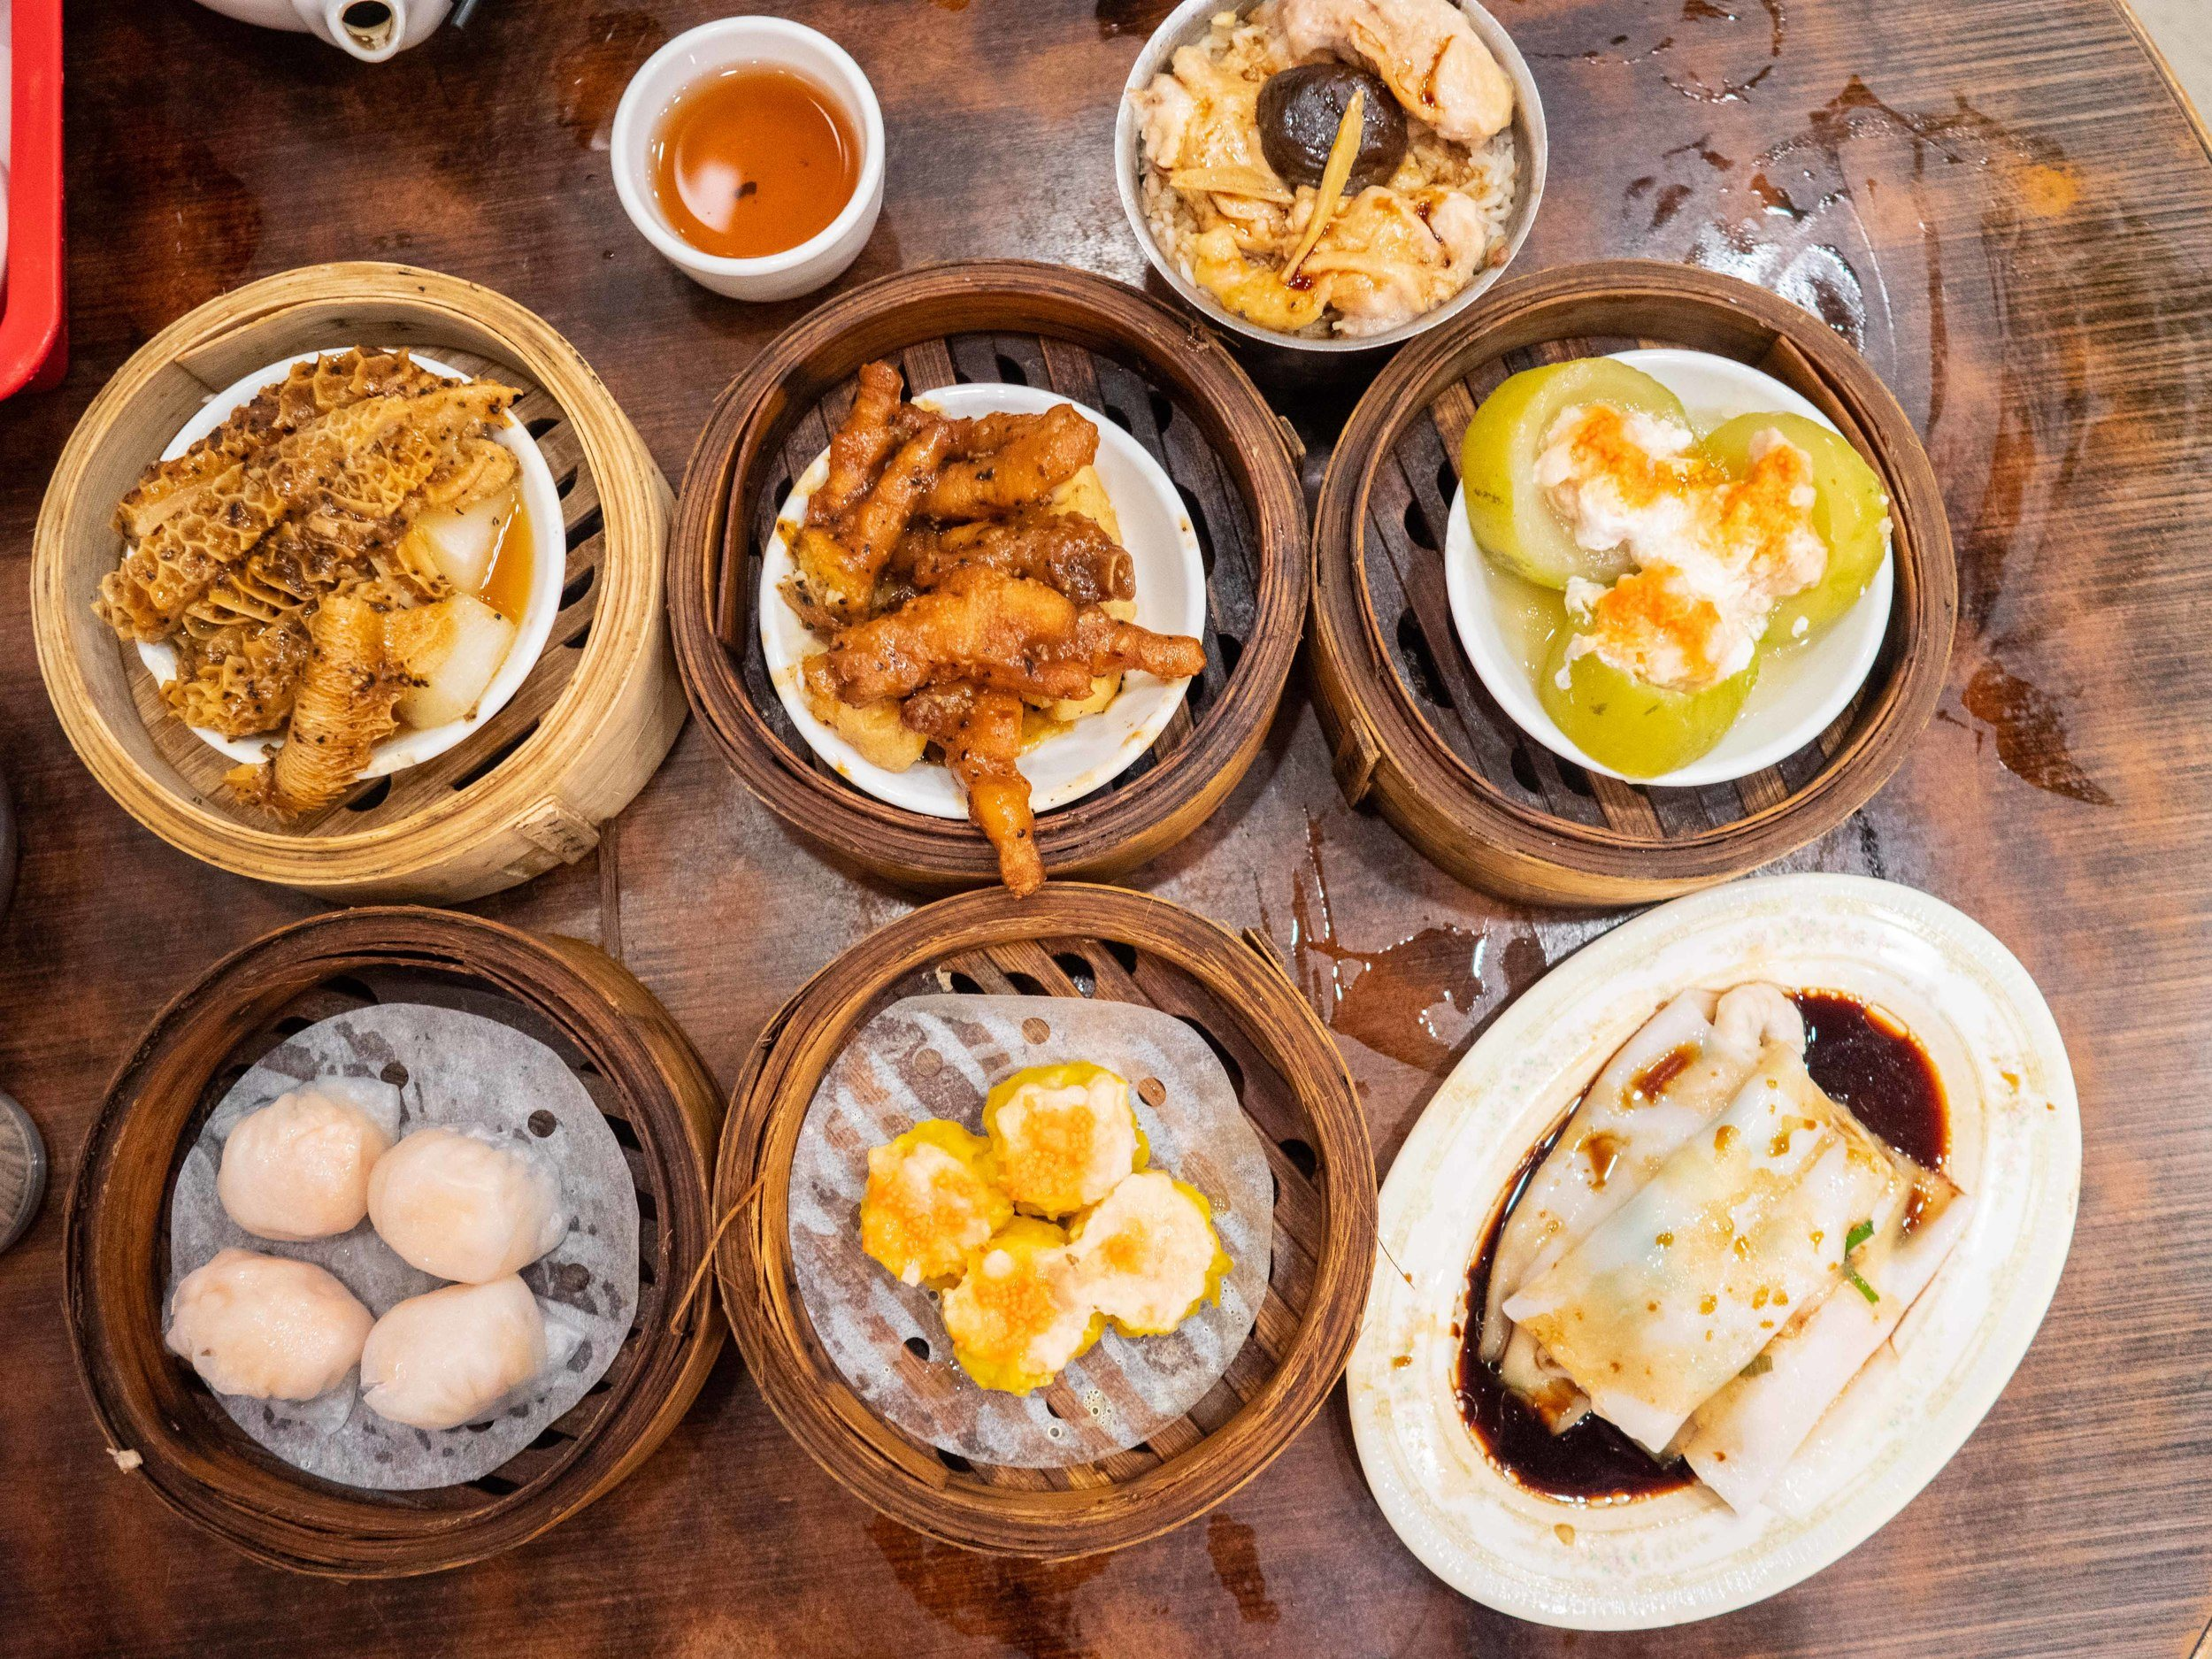 7 best dim sum dishes found at the late night dim sum restaurant in hong kong